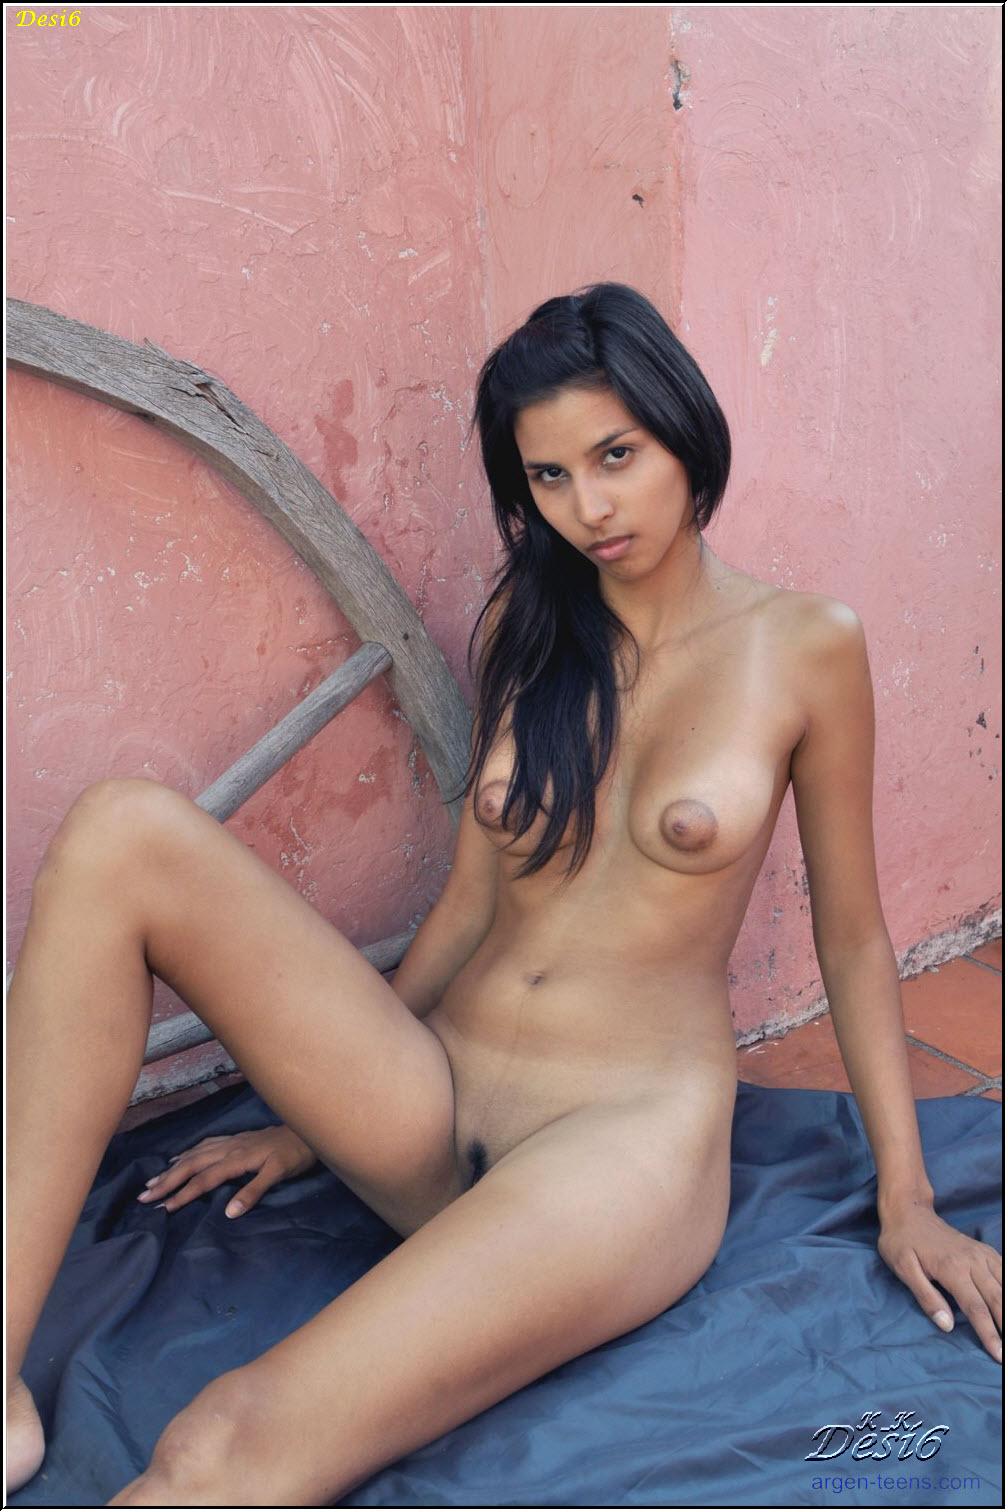 Agree, remarkable Nude girl desi are